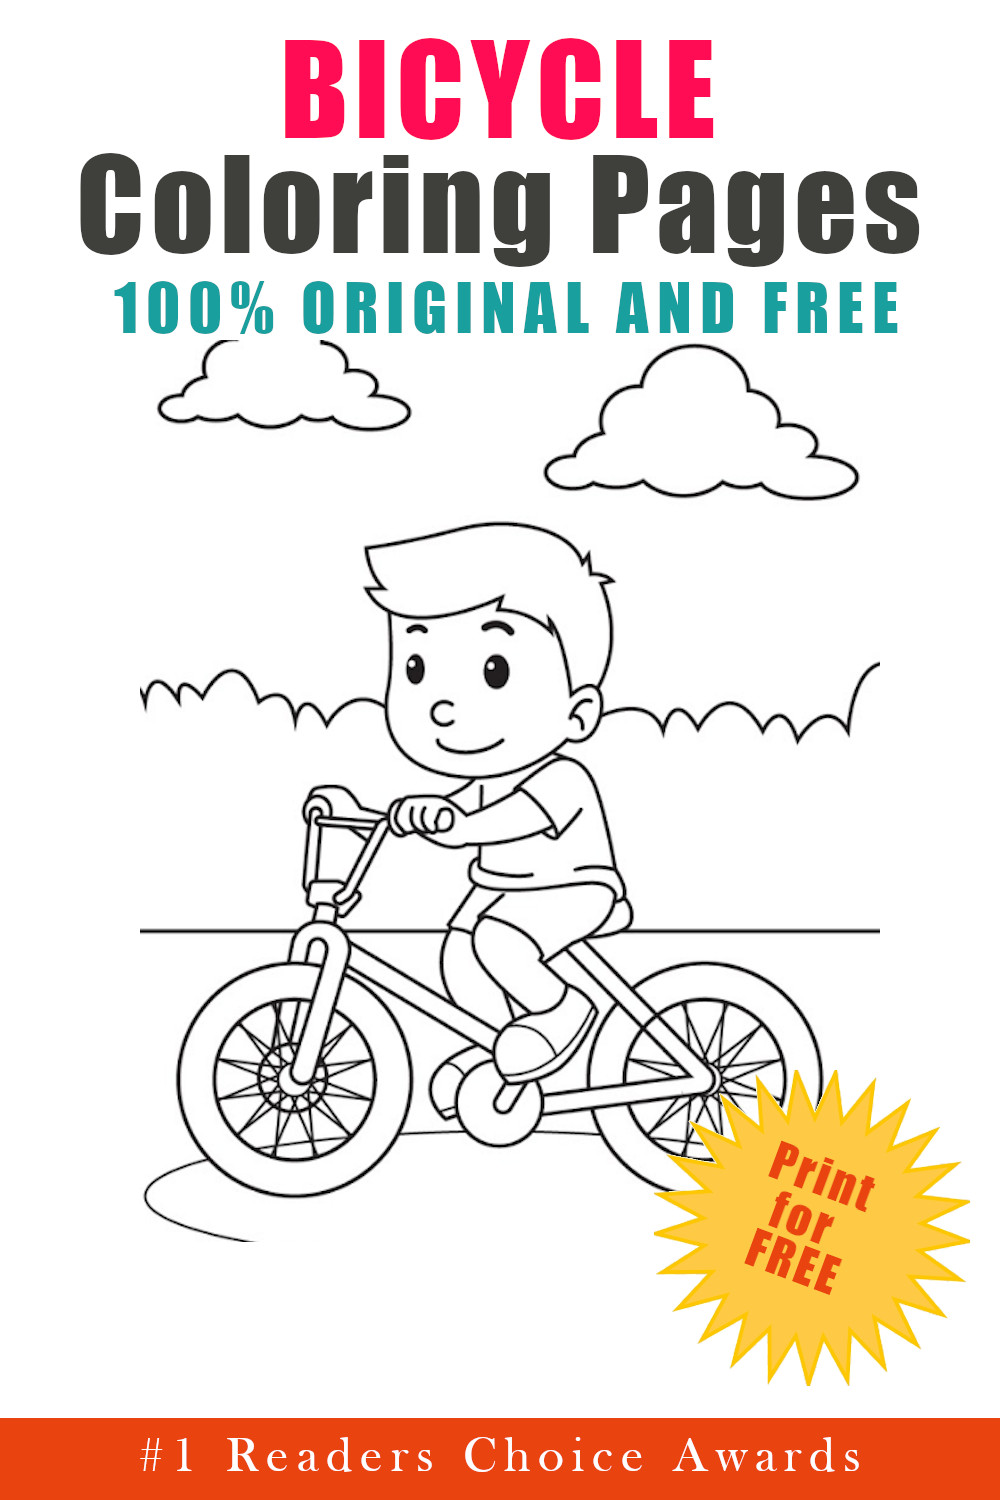 original and free bicycle coloring pages